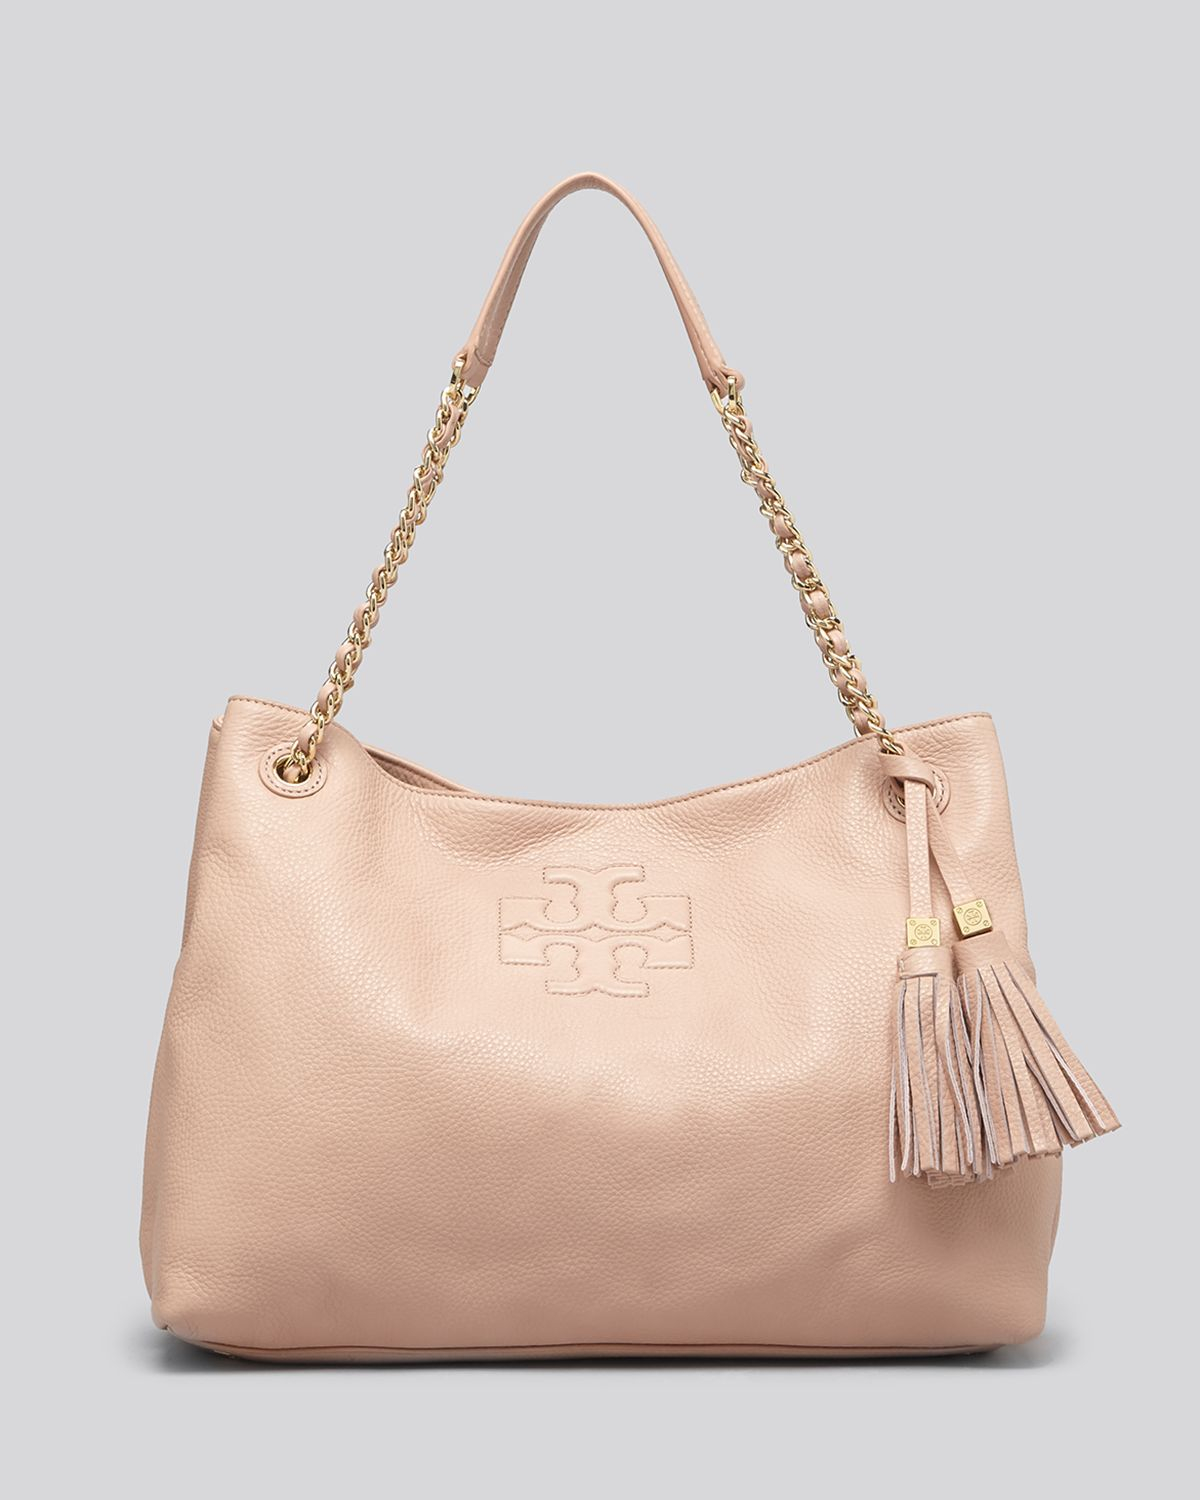 4a743e97719 Lyst - Tory Burch Tote - Thea Chain Shoulder Slouchy in Natural